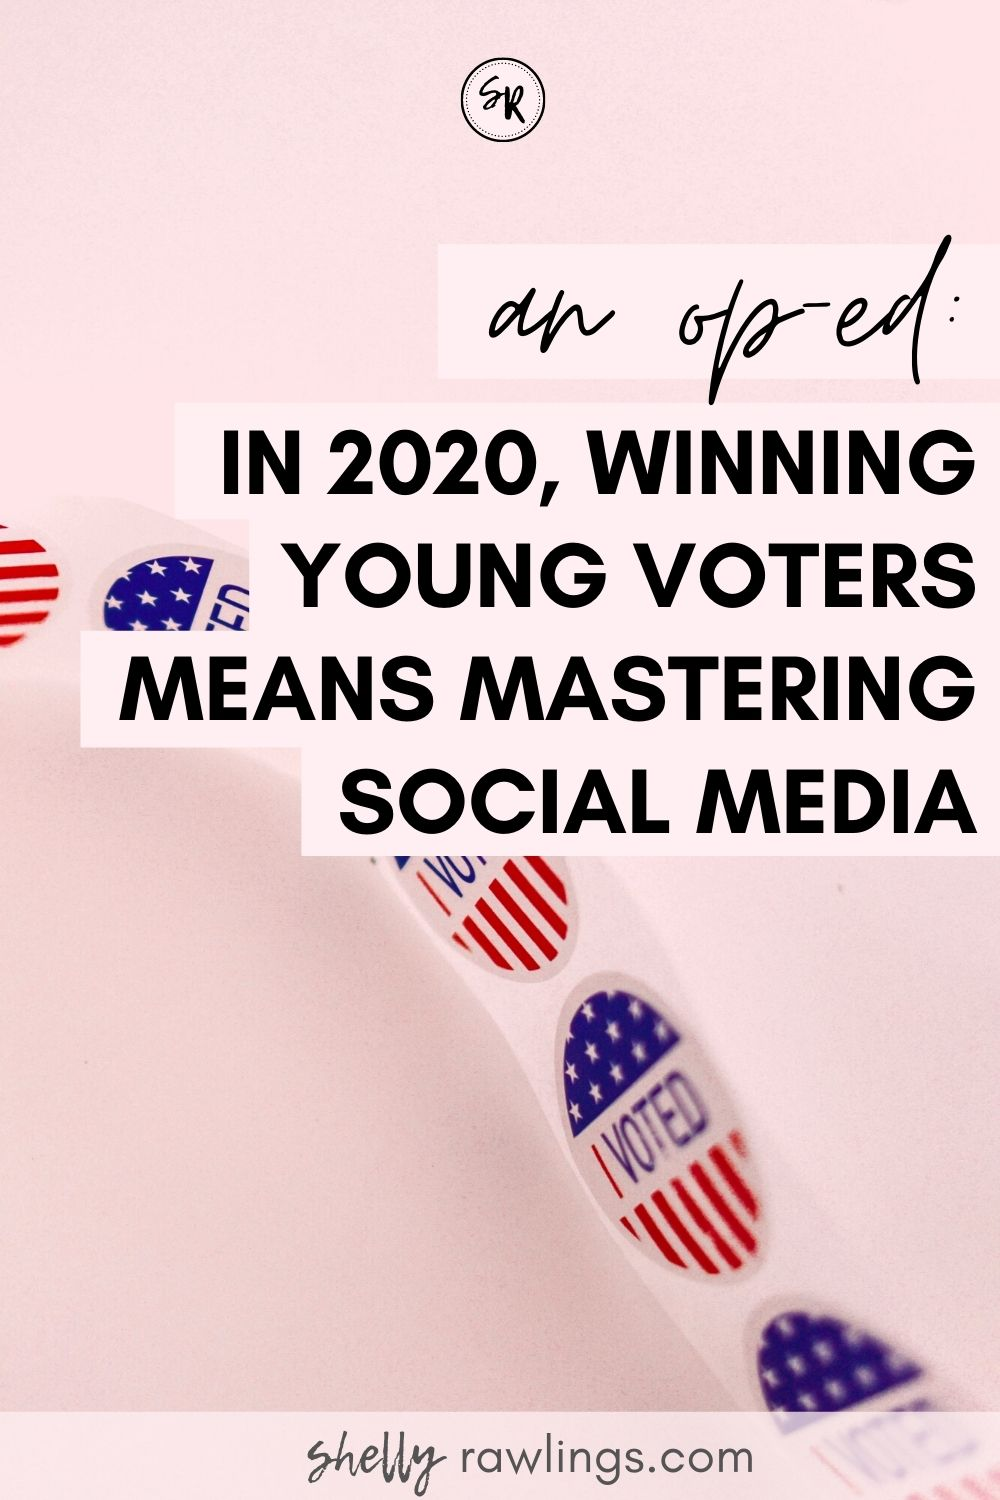 Opinion | In 2020, Winning Over Young Voters Means Mastering Social Media